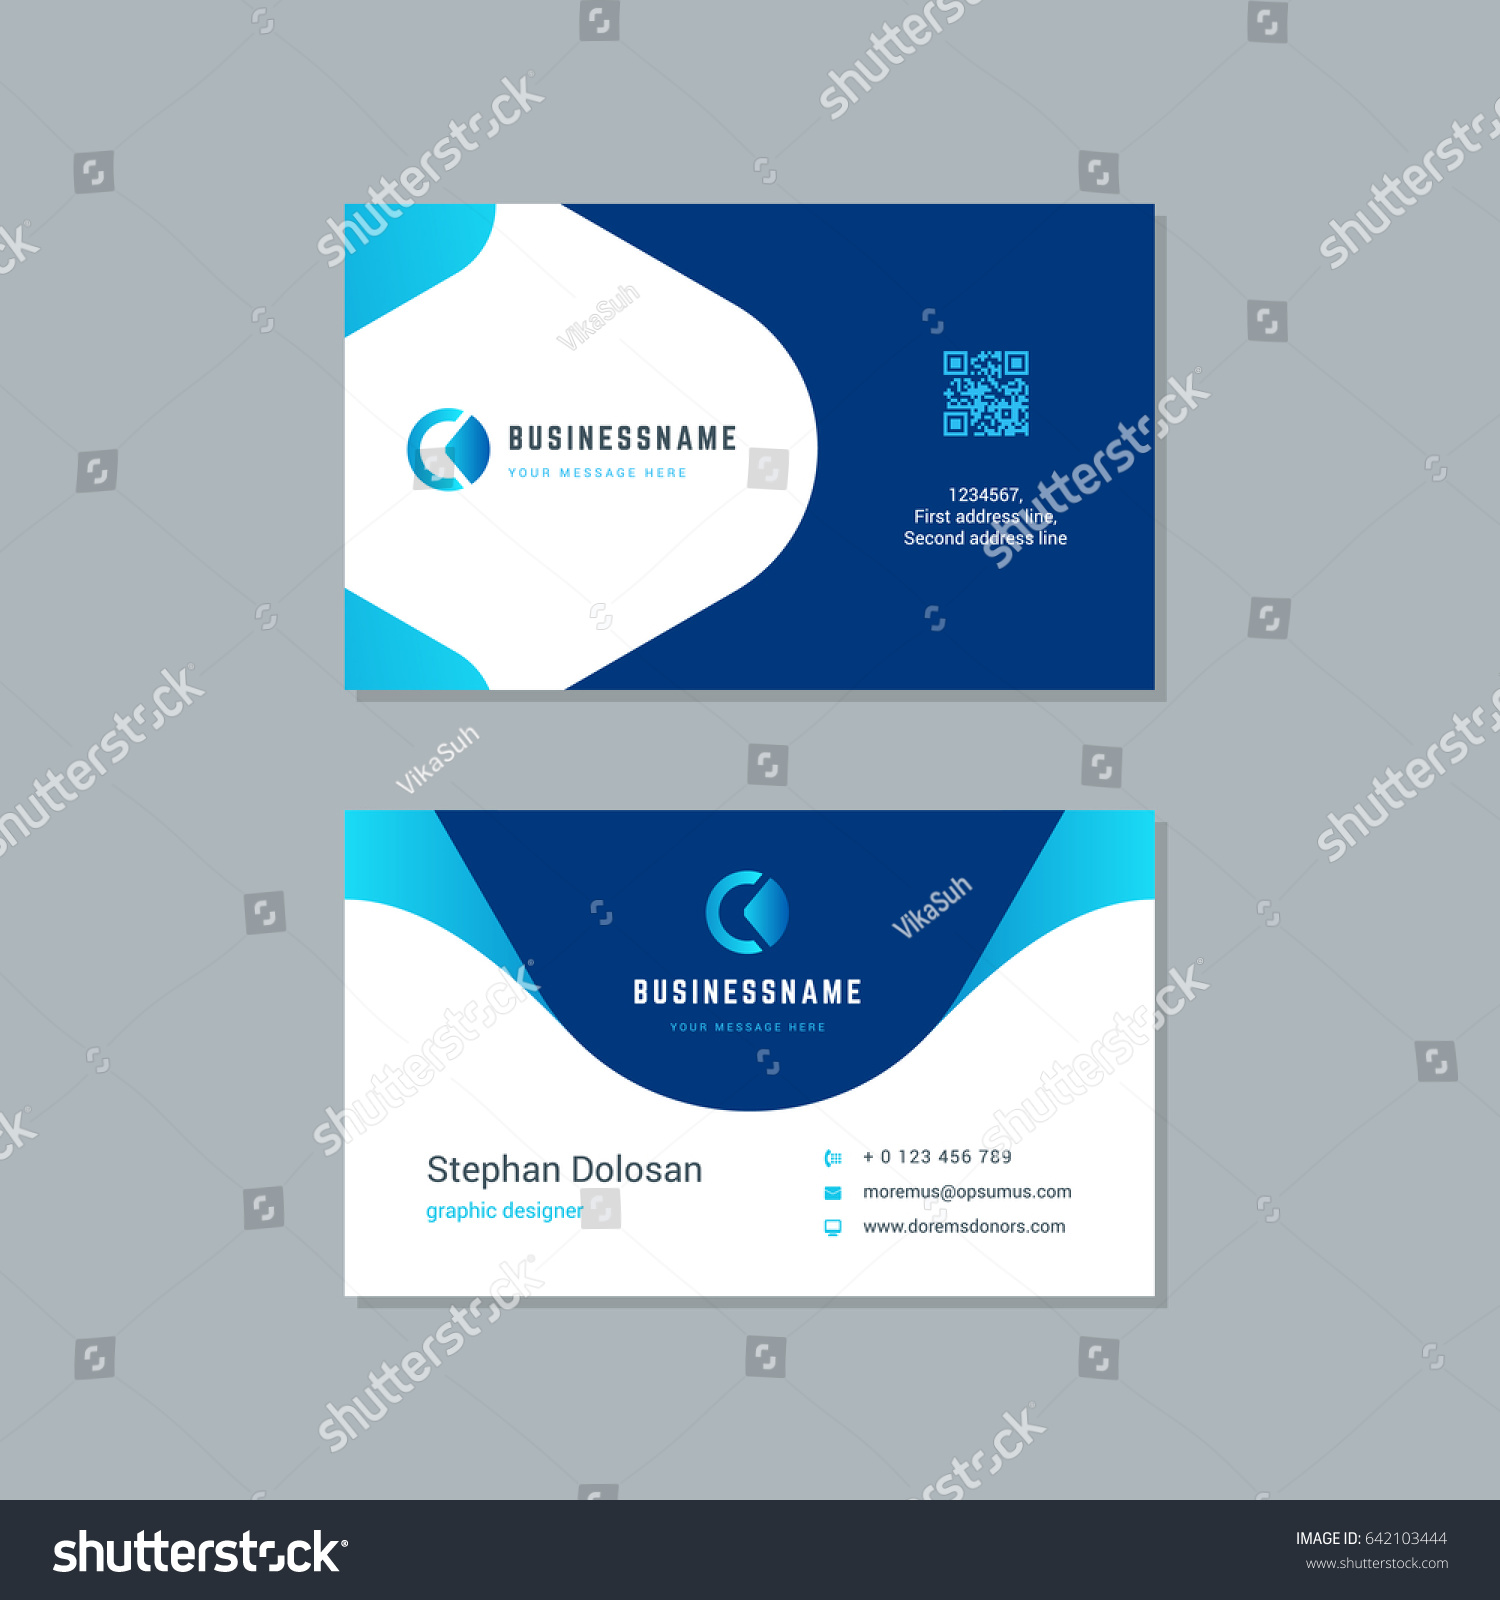 Business Card Design Trendy Blue Colors Stock Photo (Photo, Vector ...